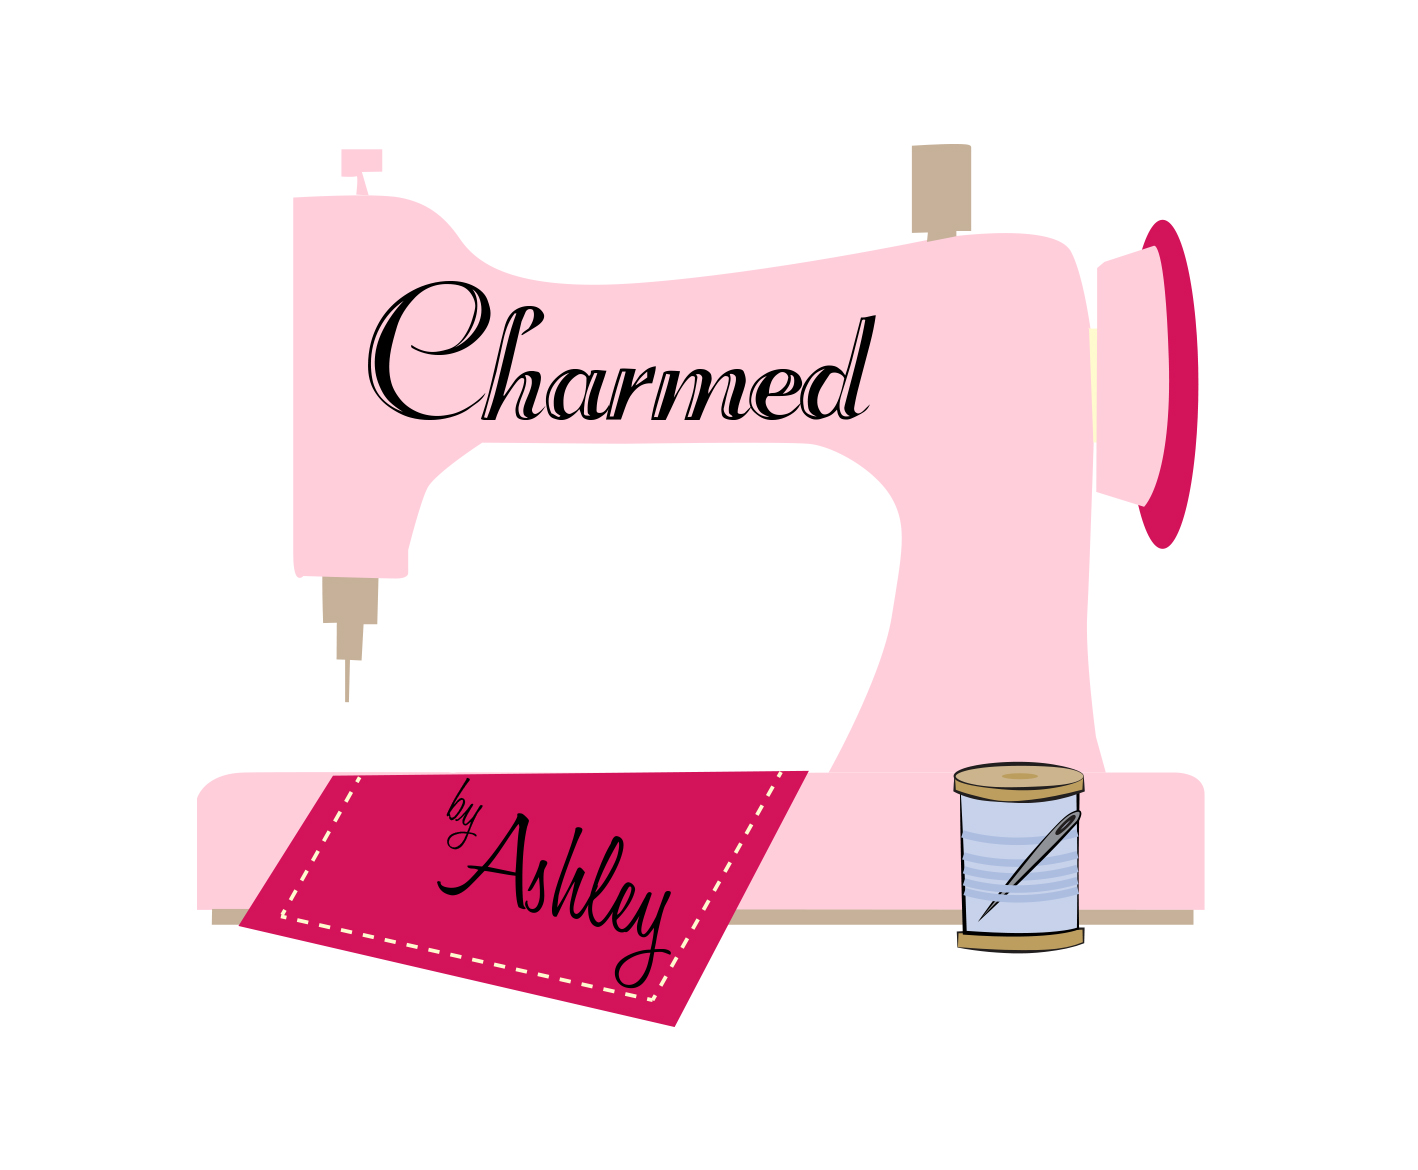 Charmed By Ashley